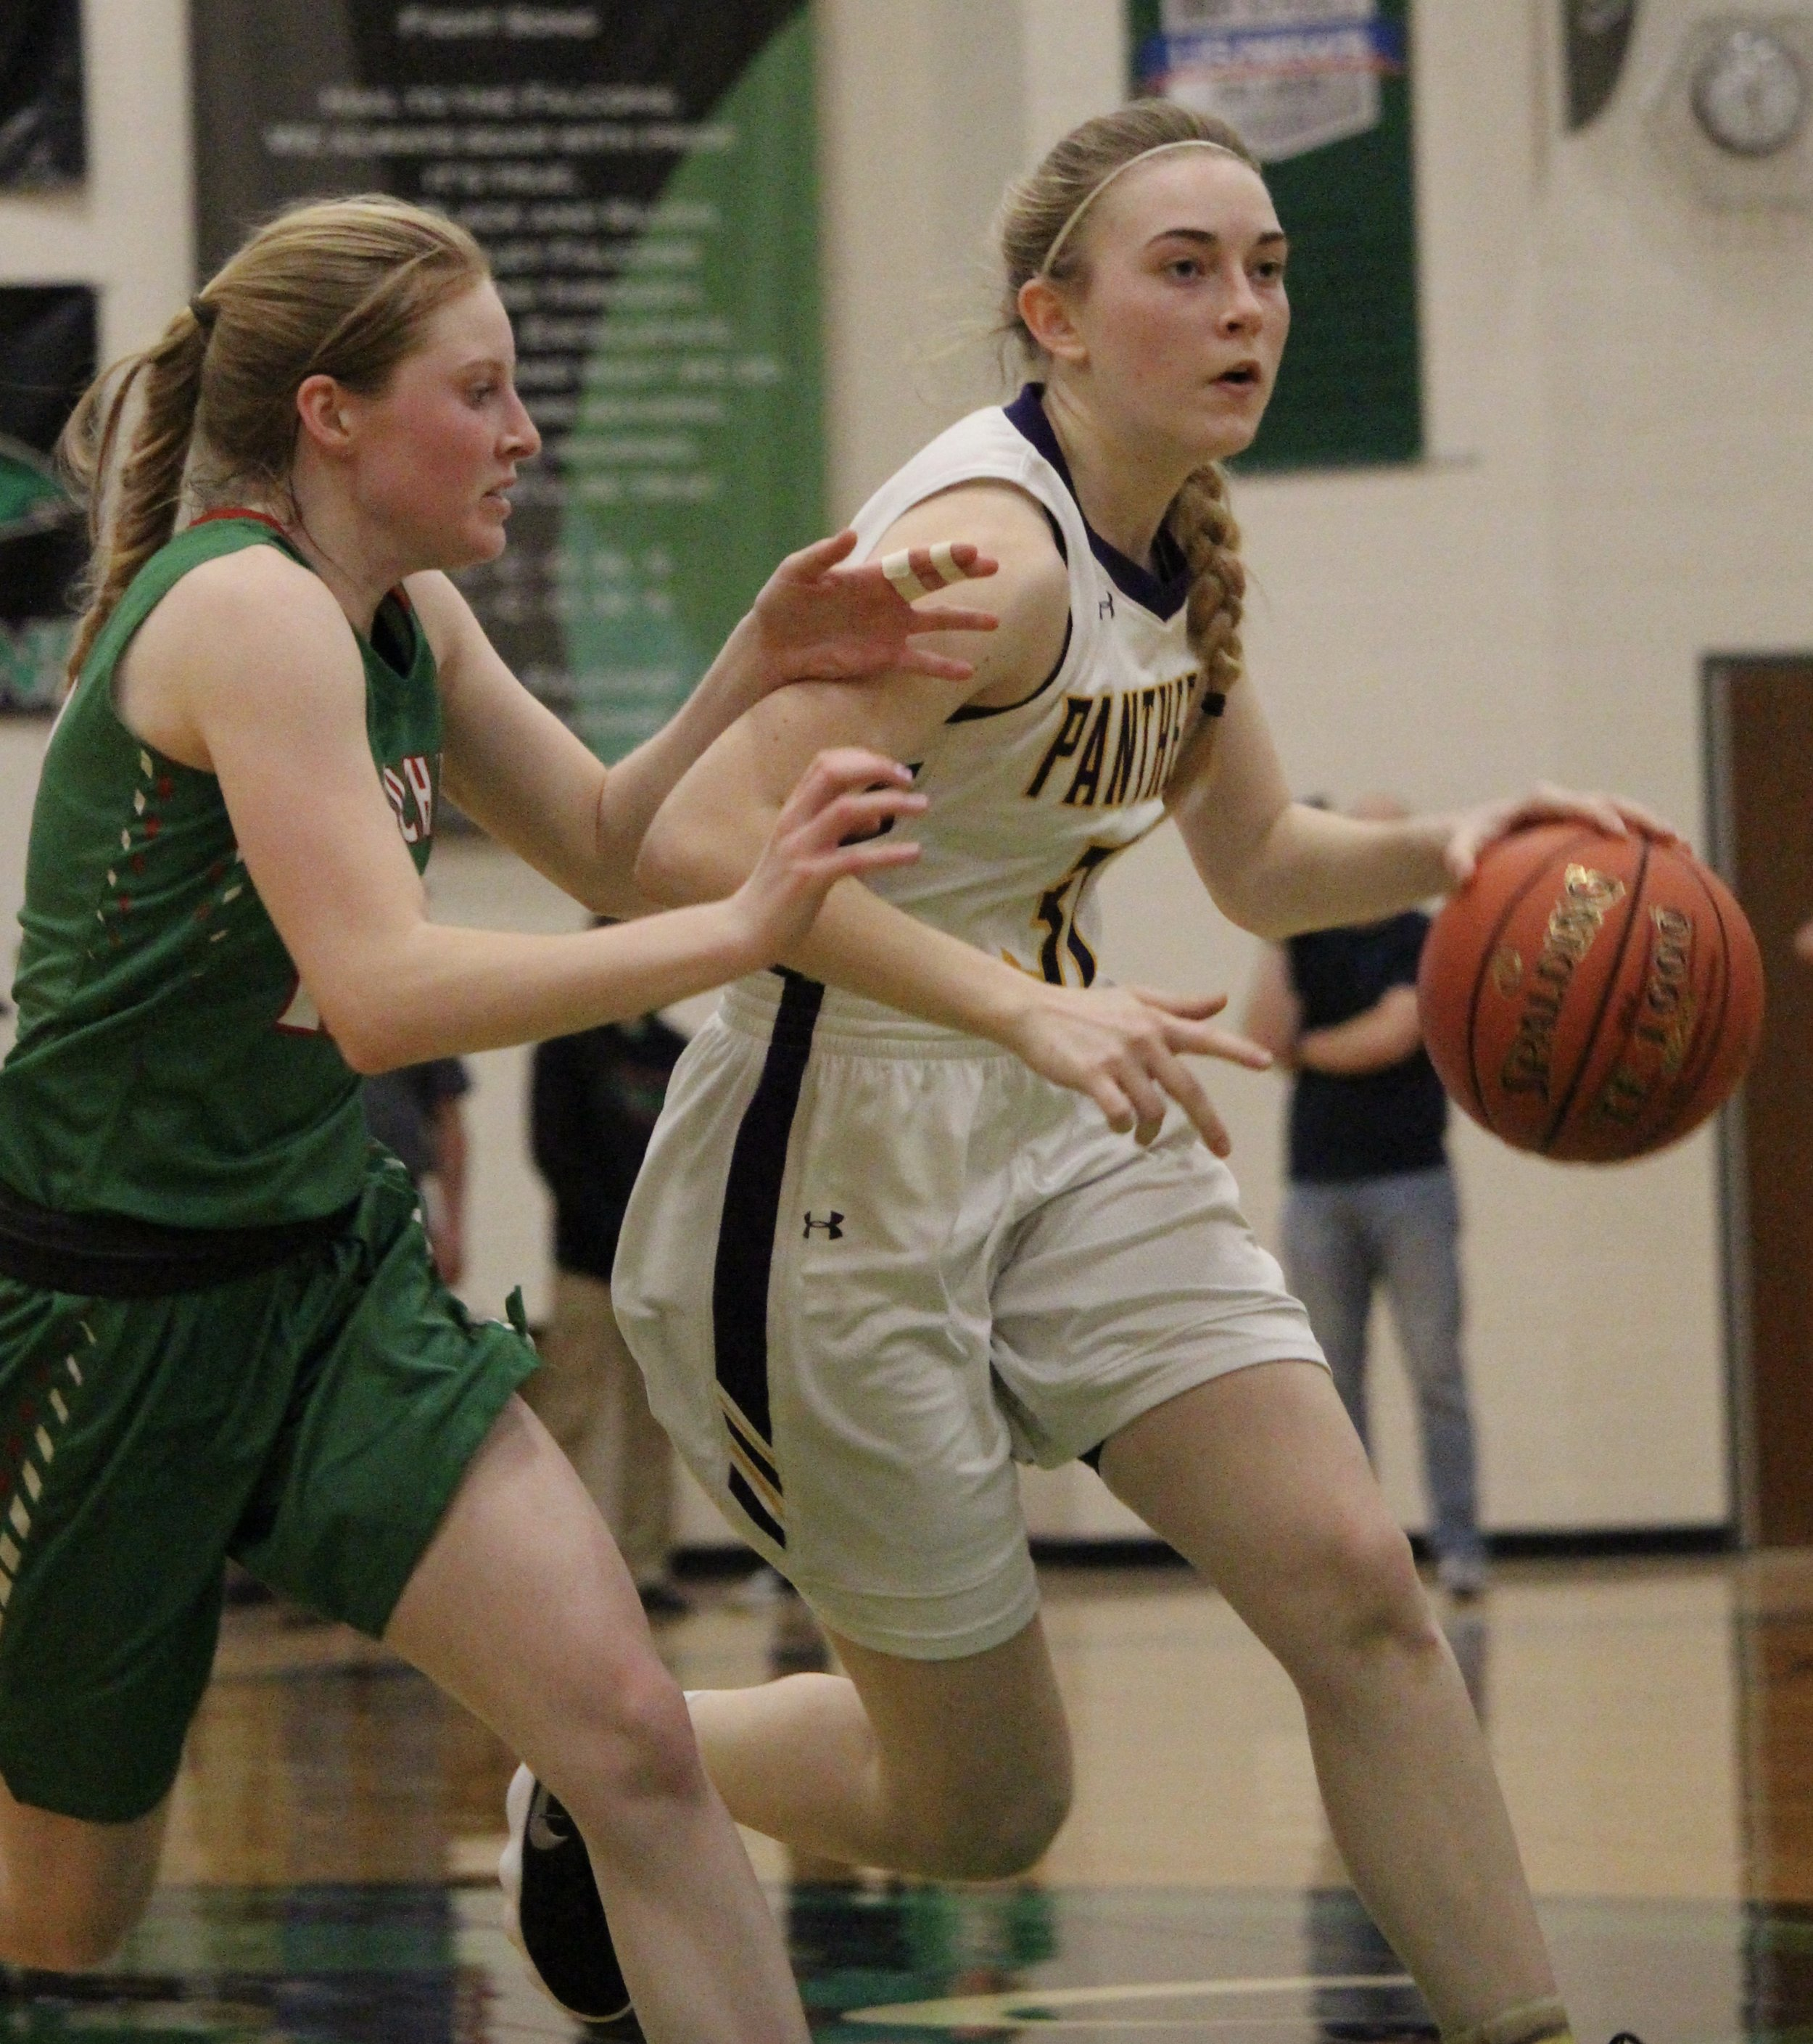 ROSS MARTIN/Special to the Citizen North Platte's Janell Manville, right, dribbles during a Class 2 playoff game against Mid-Buchanan at Staley High School on Feb. 27.